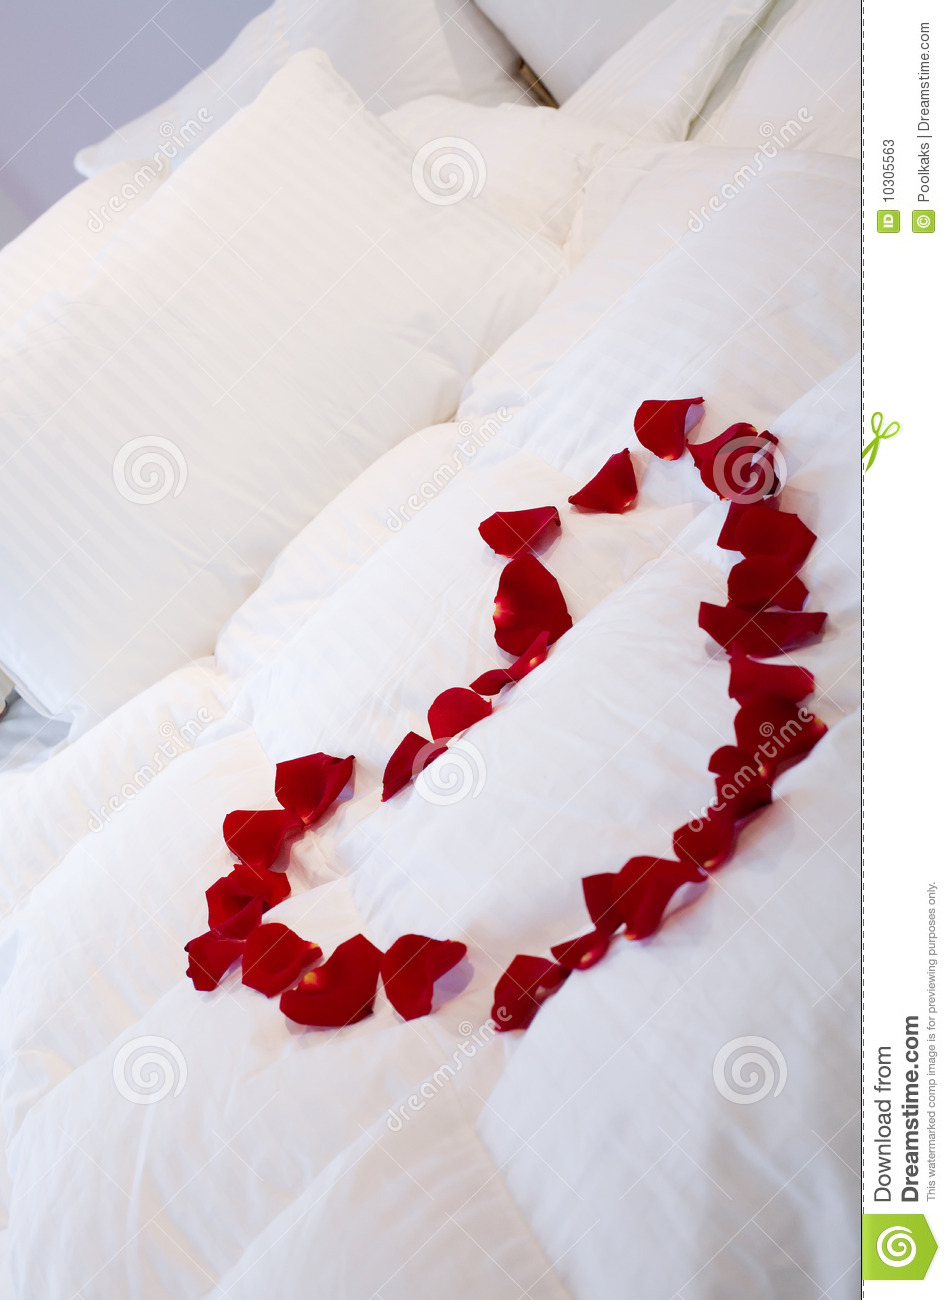 Romantic Bed With Heart Of Roses Stock Image Image 10305563